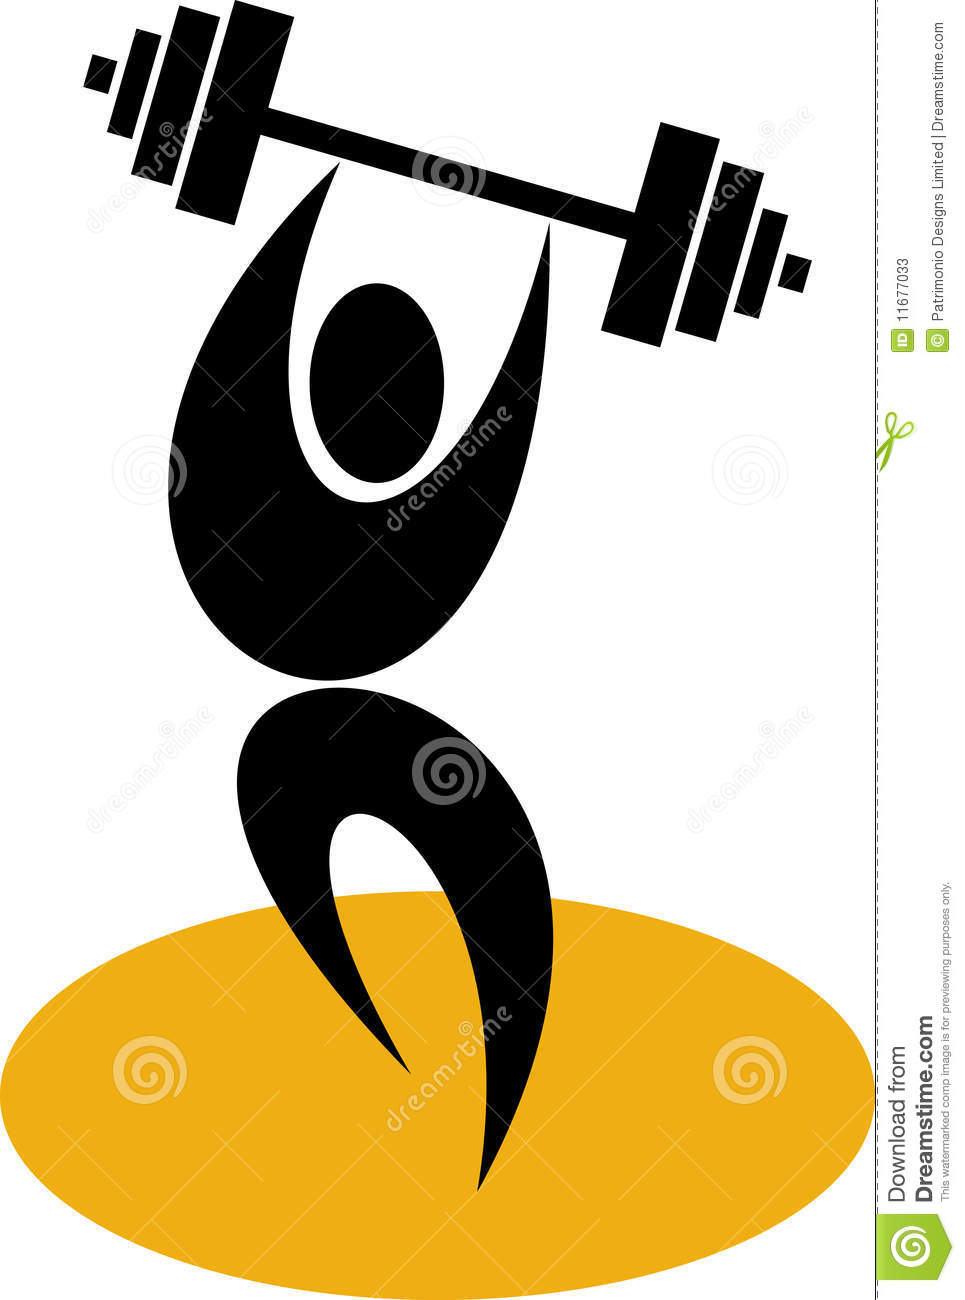 Weightlifter Lifting Weights Stock Photos - Image: 11677033